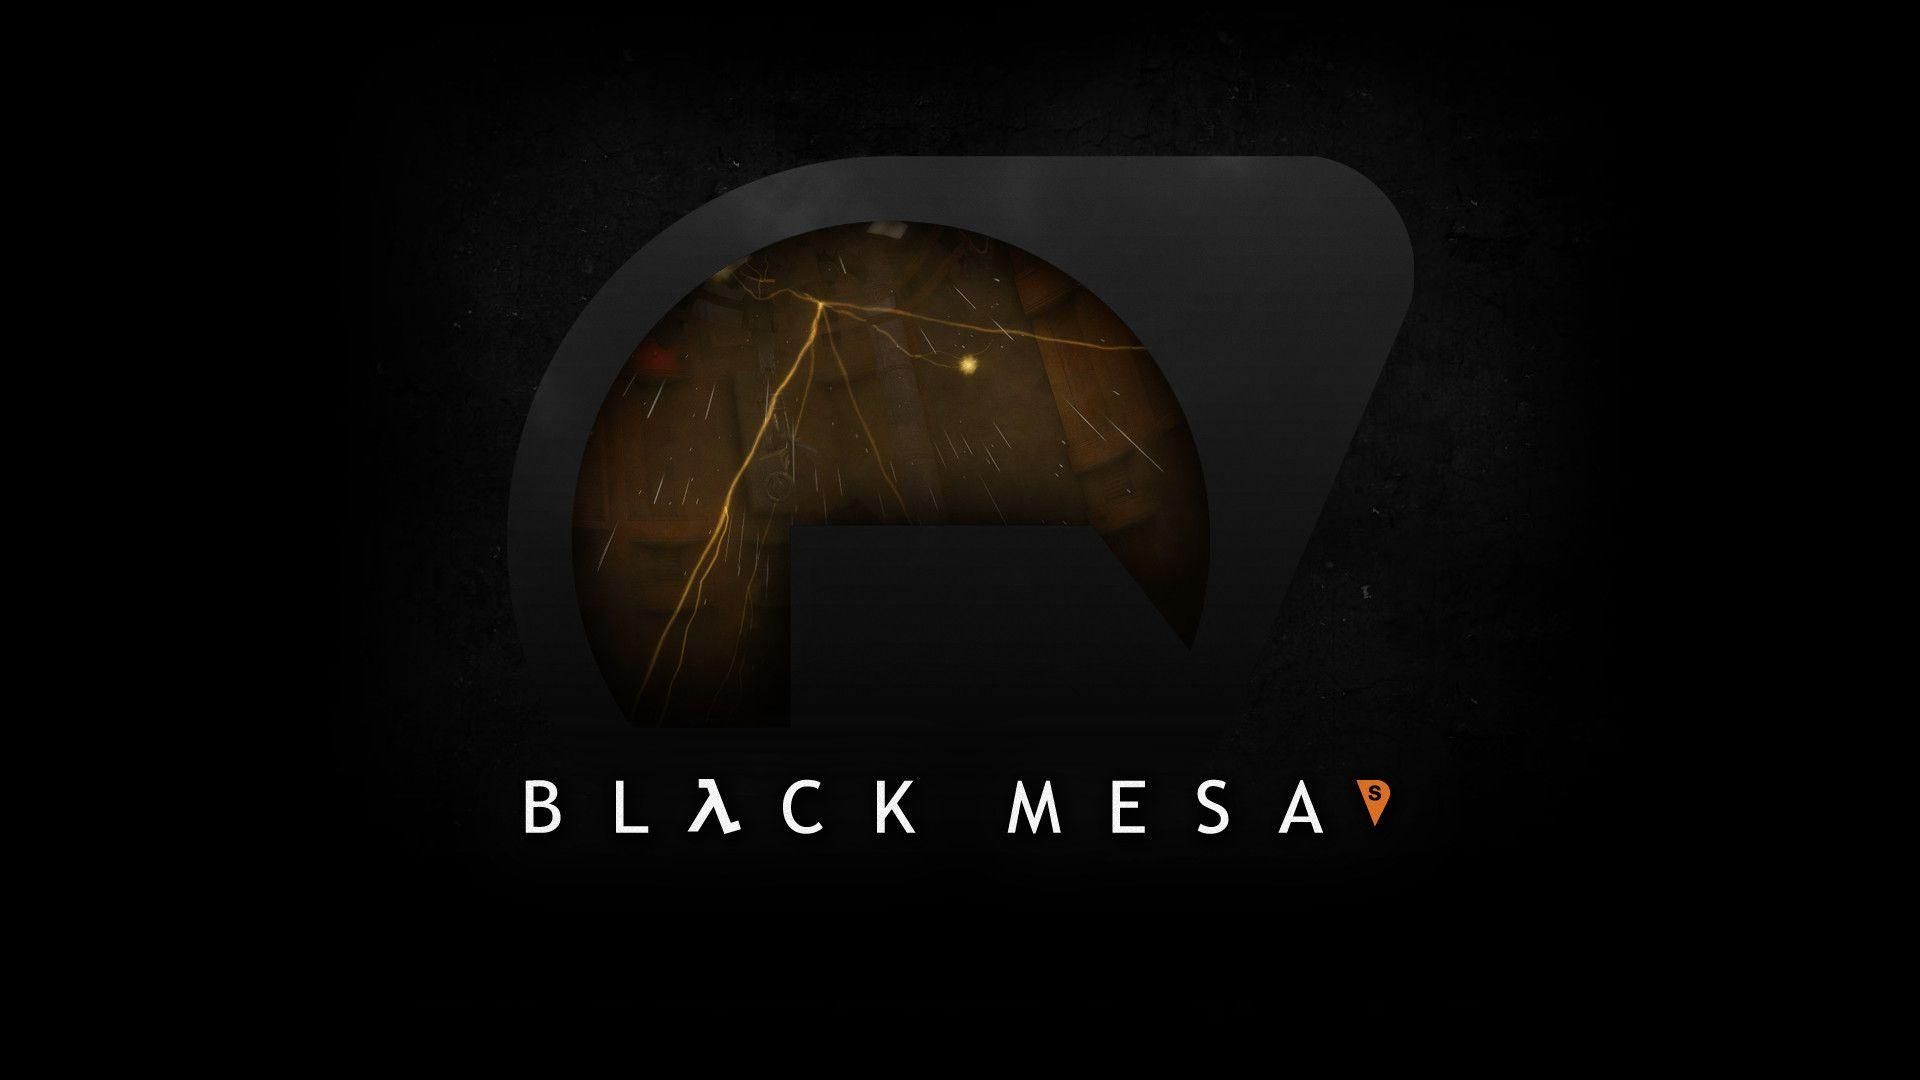 Black Mesa Wallpaper #1 by Naimvb on DeviantArt